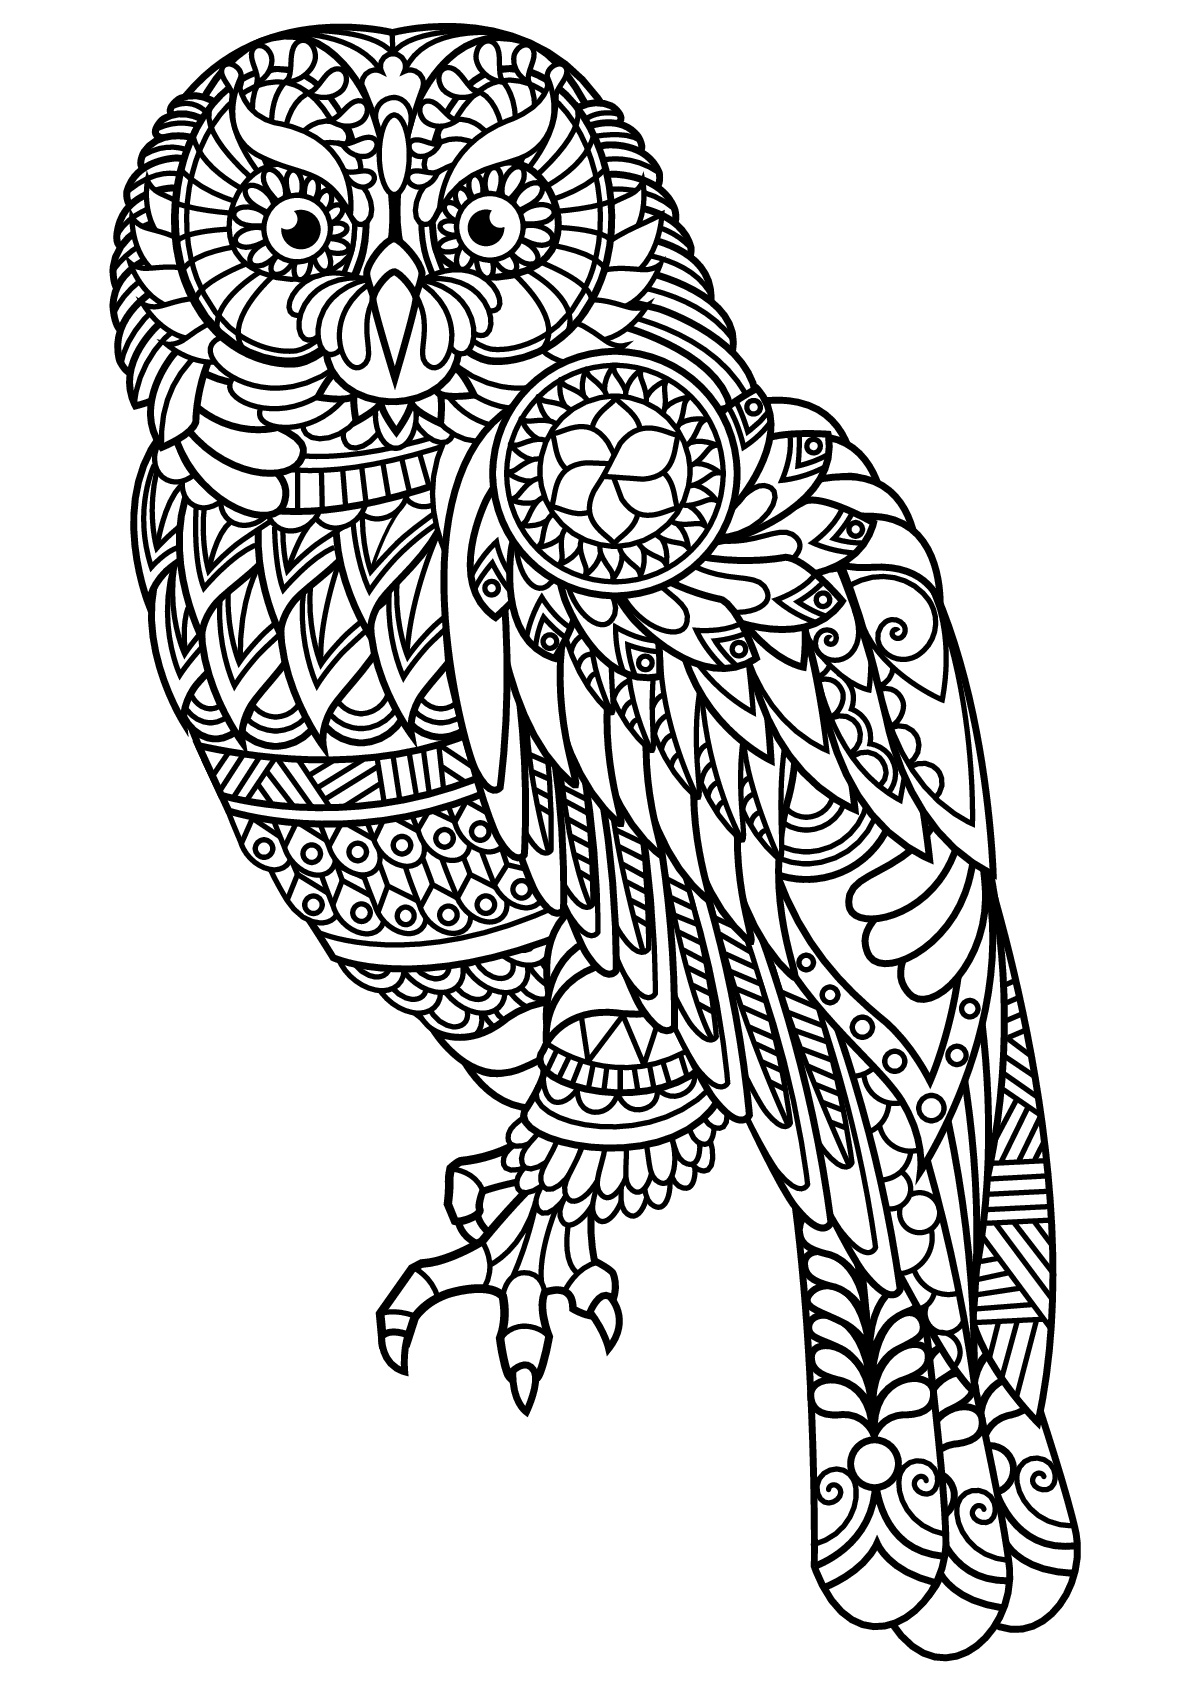 free printable color sheets zebra coloring pages free printable kids coloring pages printable sheets color free